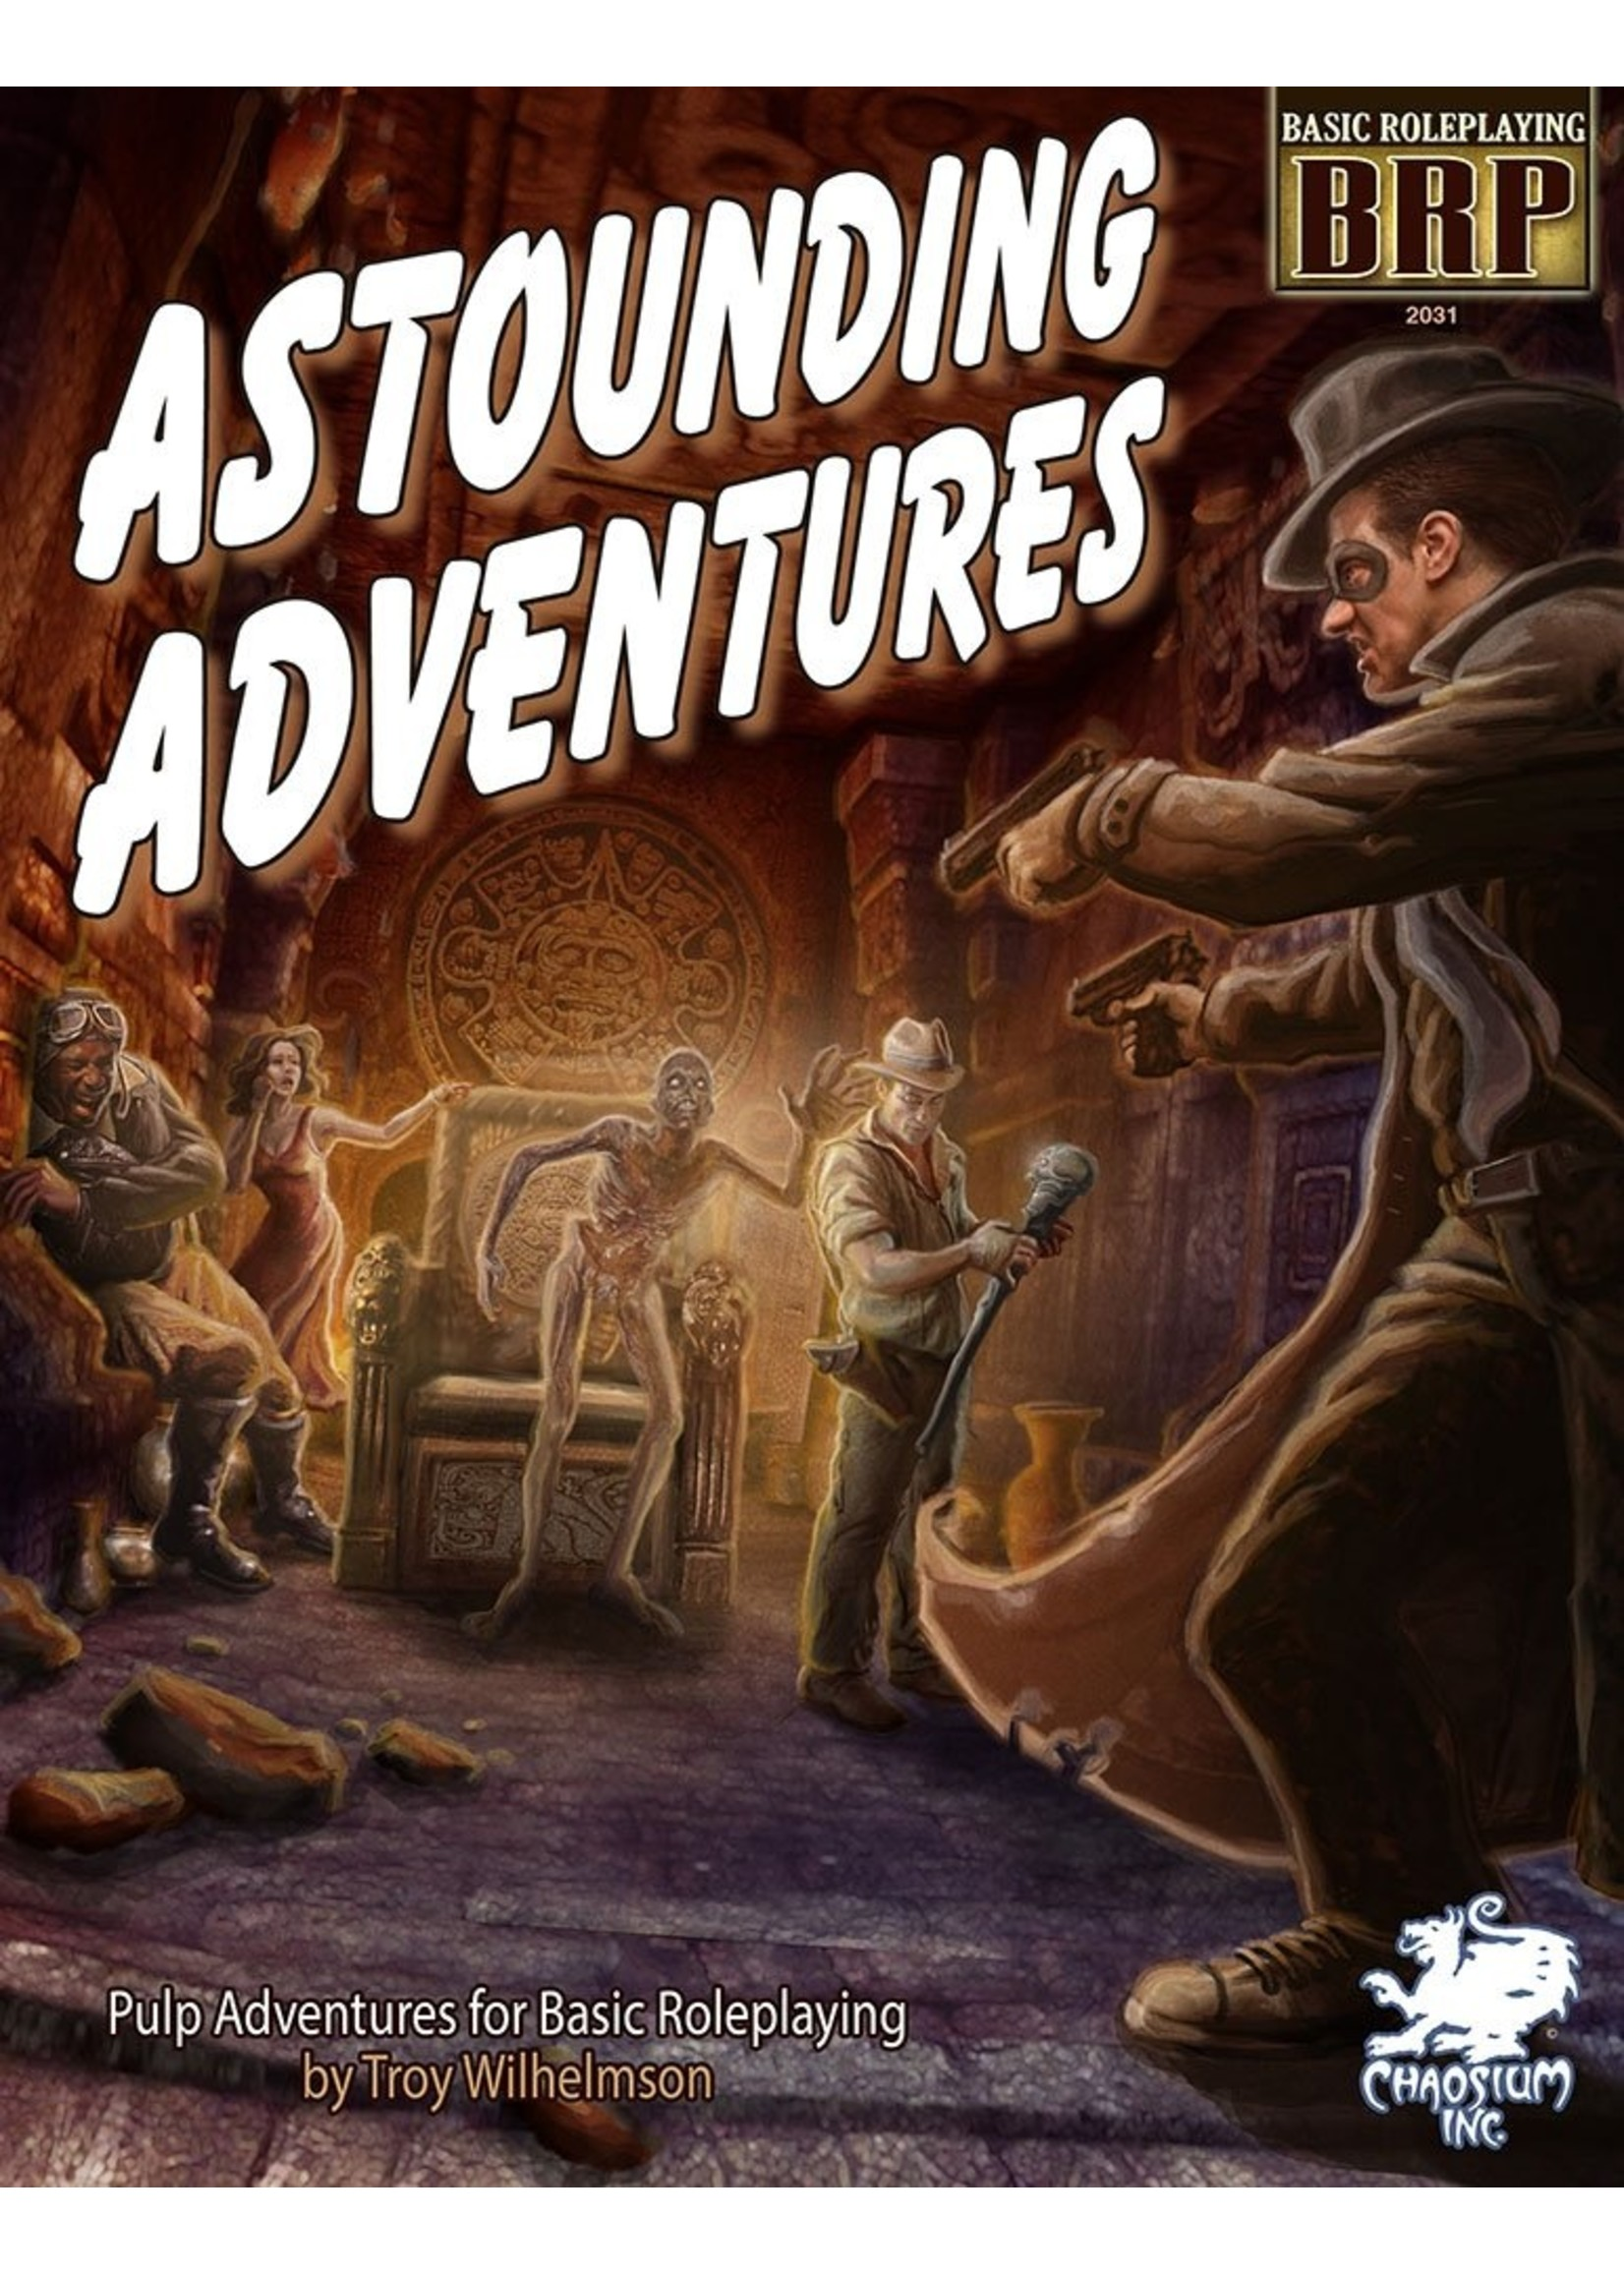 BRP: Astounding Adventures